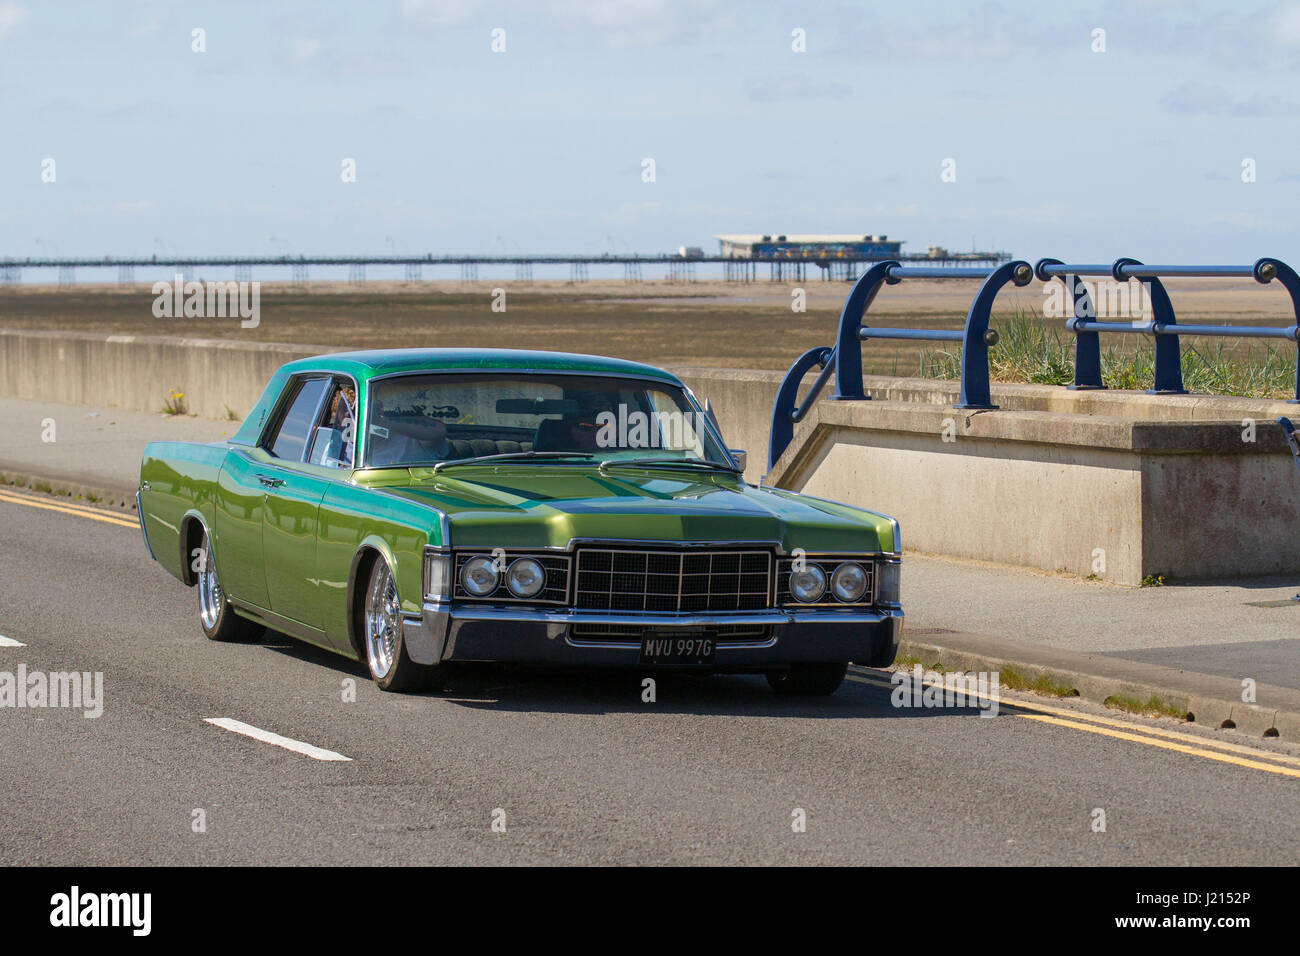 1969 American Green Lincoln Cars From The Gawsworth Hall Veteran